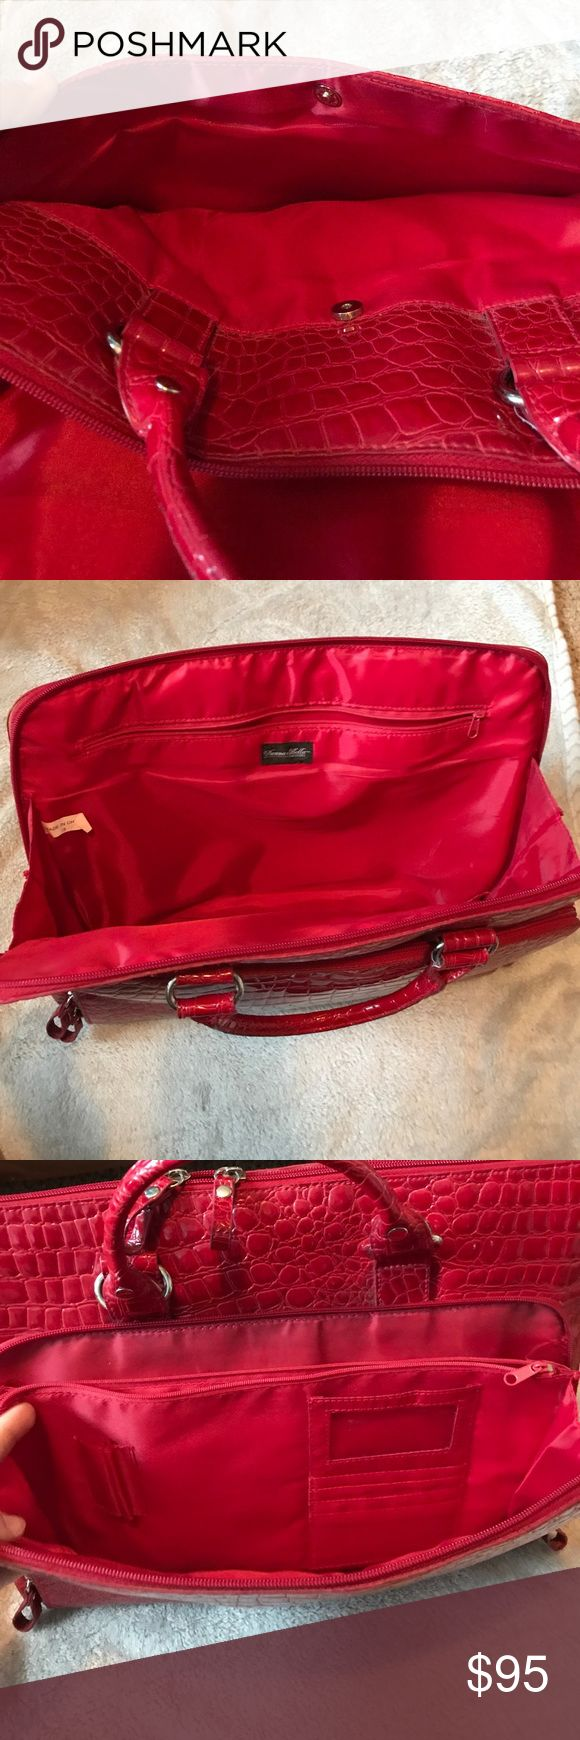 Red Donna Bella Laptop Tote A EUC Donna Bella Laptop Tote in red! In very good condition besides the slight tear in the handle (picture #8). Very spacious & has the front pocket for all purse essentials! (Cards, phone, make up, etc). Donna Bella Designs Bags Totes